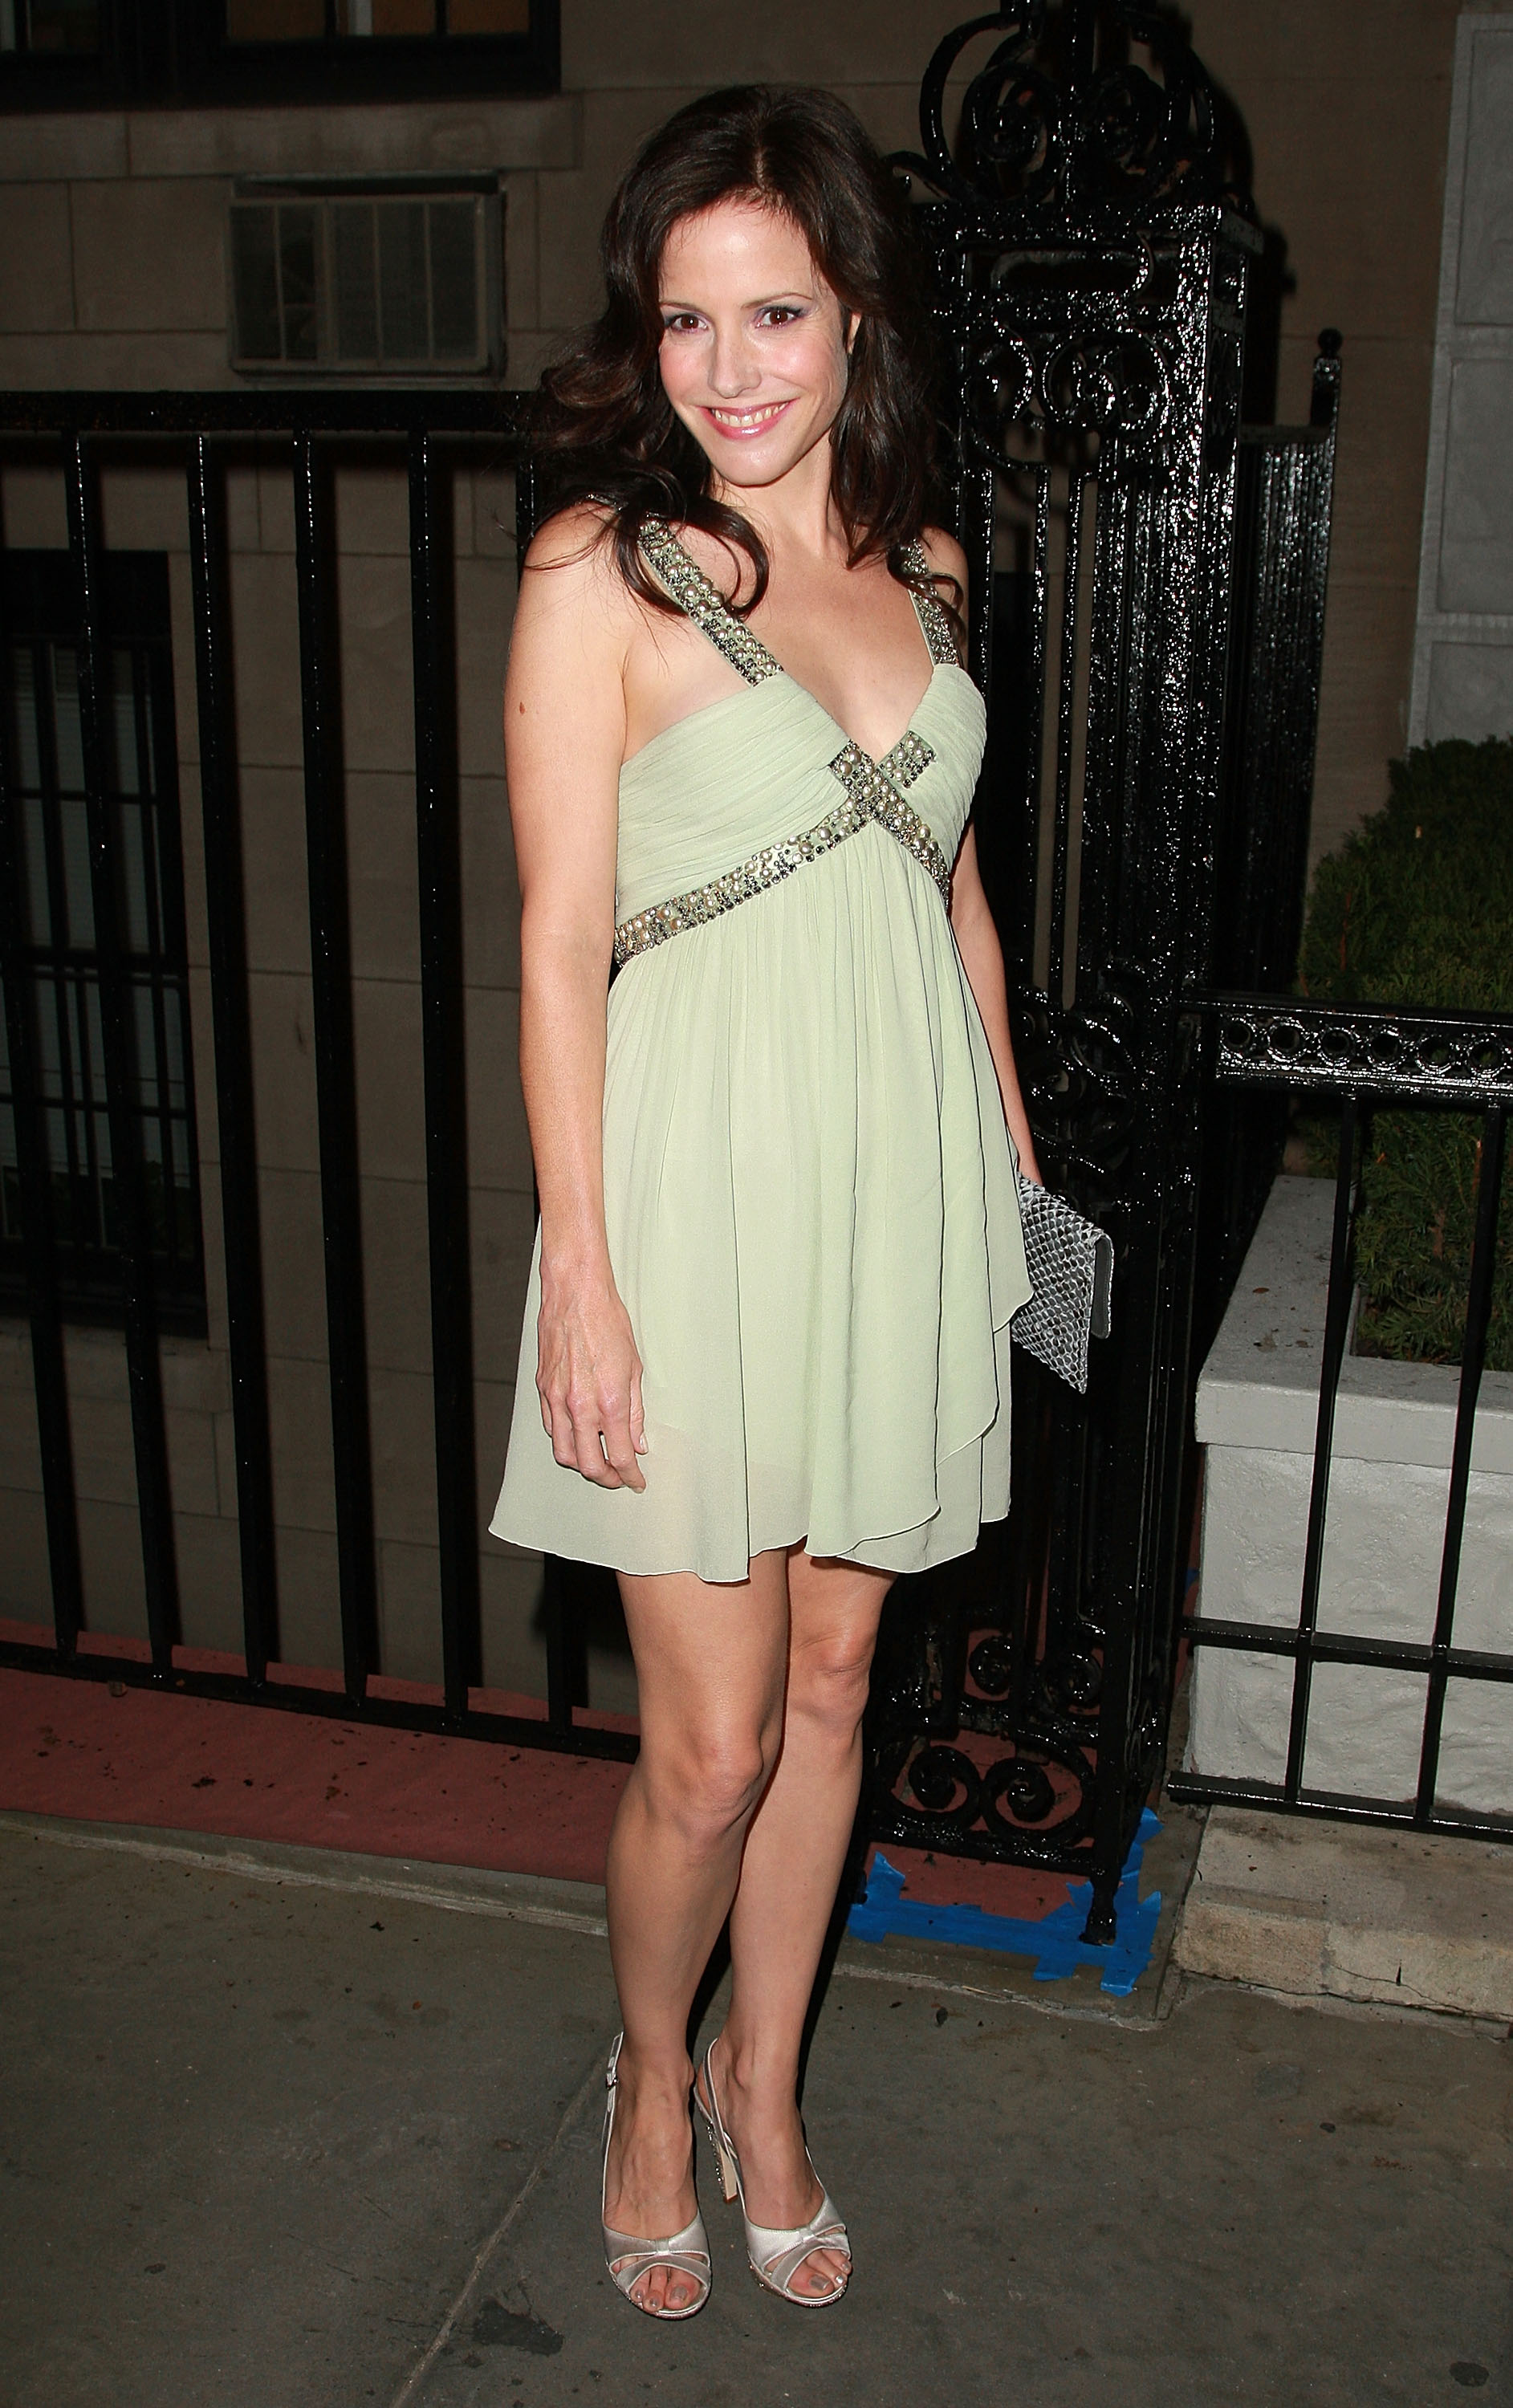 40340_Celebutopia-Marie-Louise_Parker-Showtime20s_Dexter_And_Californication_Season_Premieres_in_New_York_City-02_122_178lo.jpg